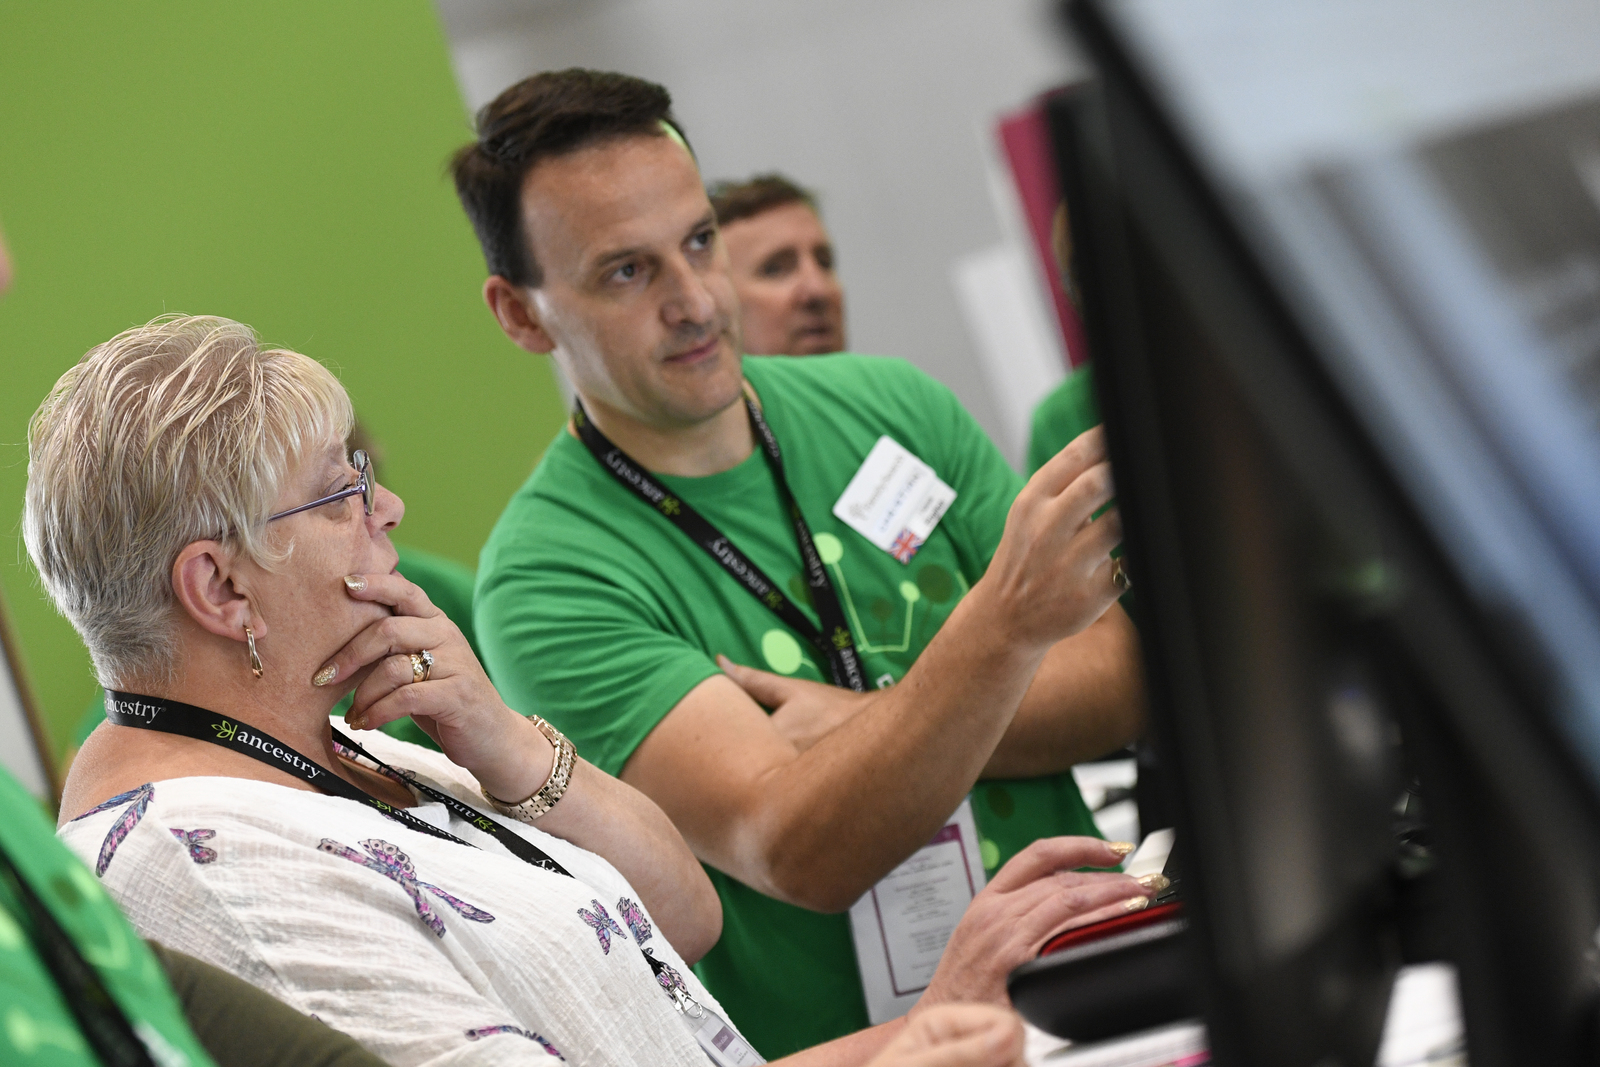 FamilySearch assistants help attendees to RootsTech London in the FamilySearch booth in the London ExCel exhibition hall on Thursday, Oct. 24. 2019.